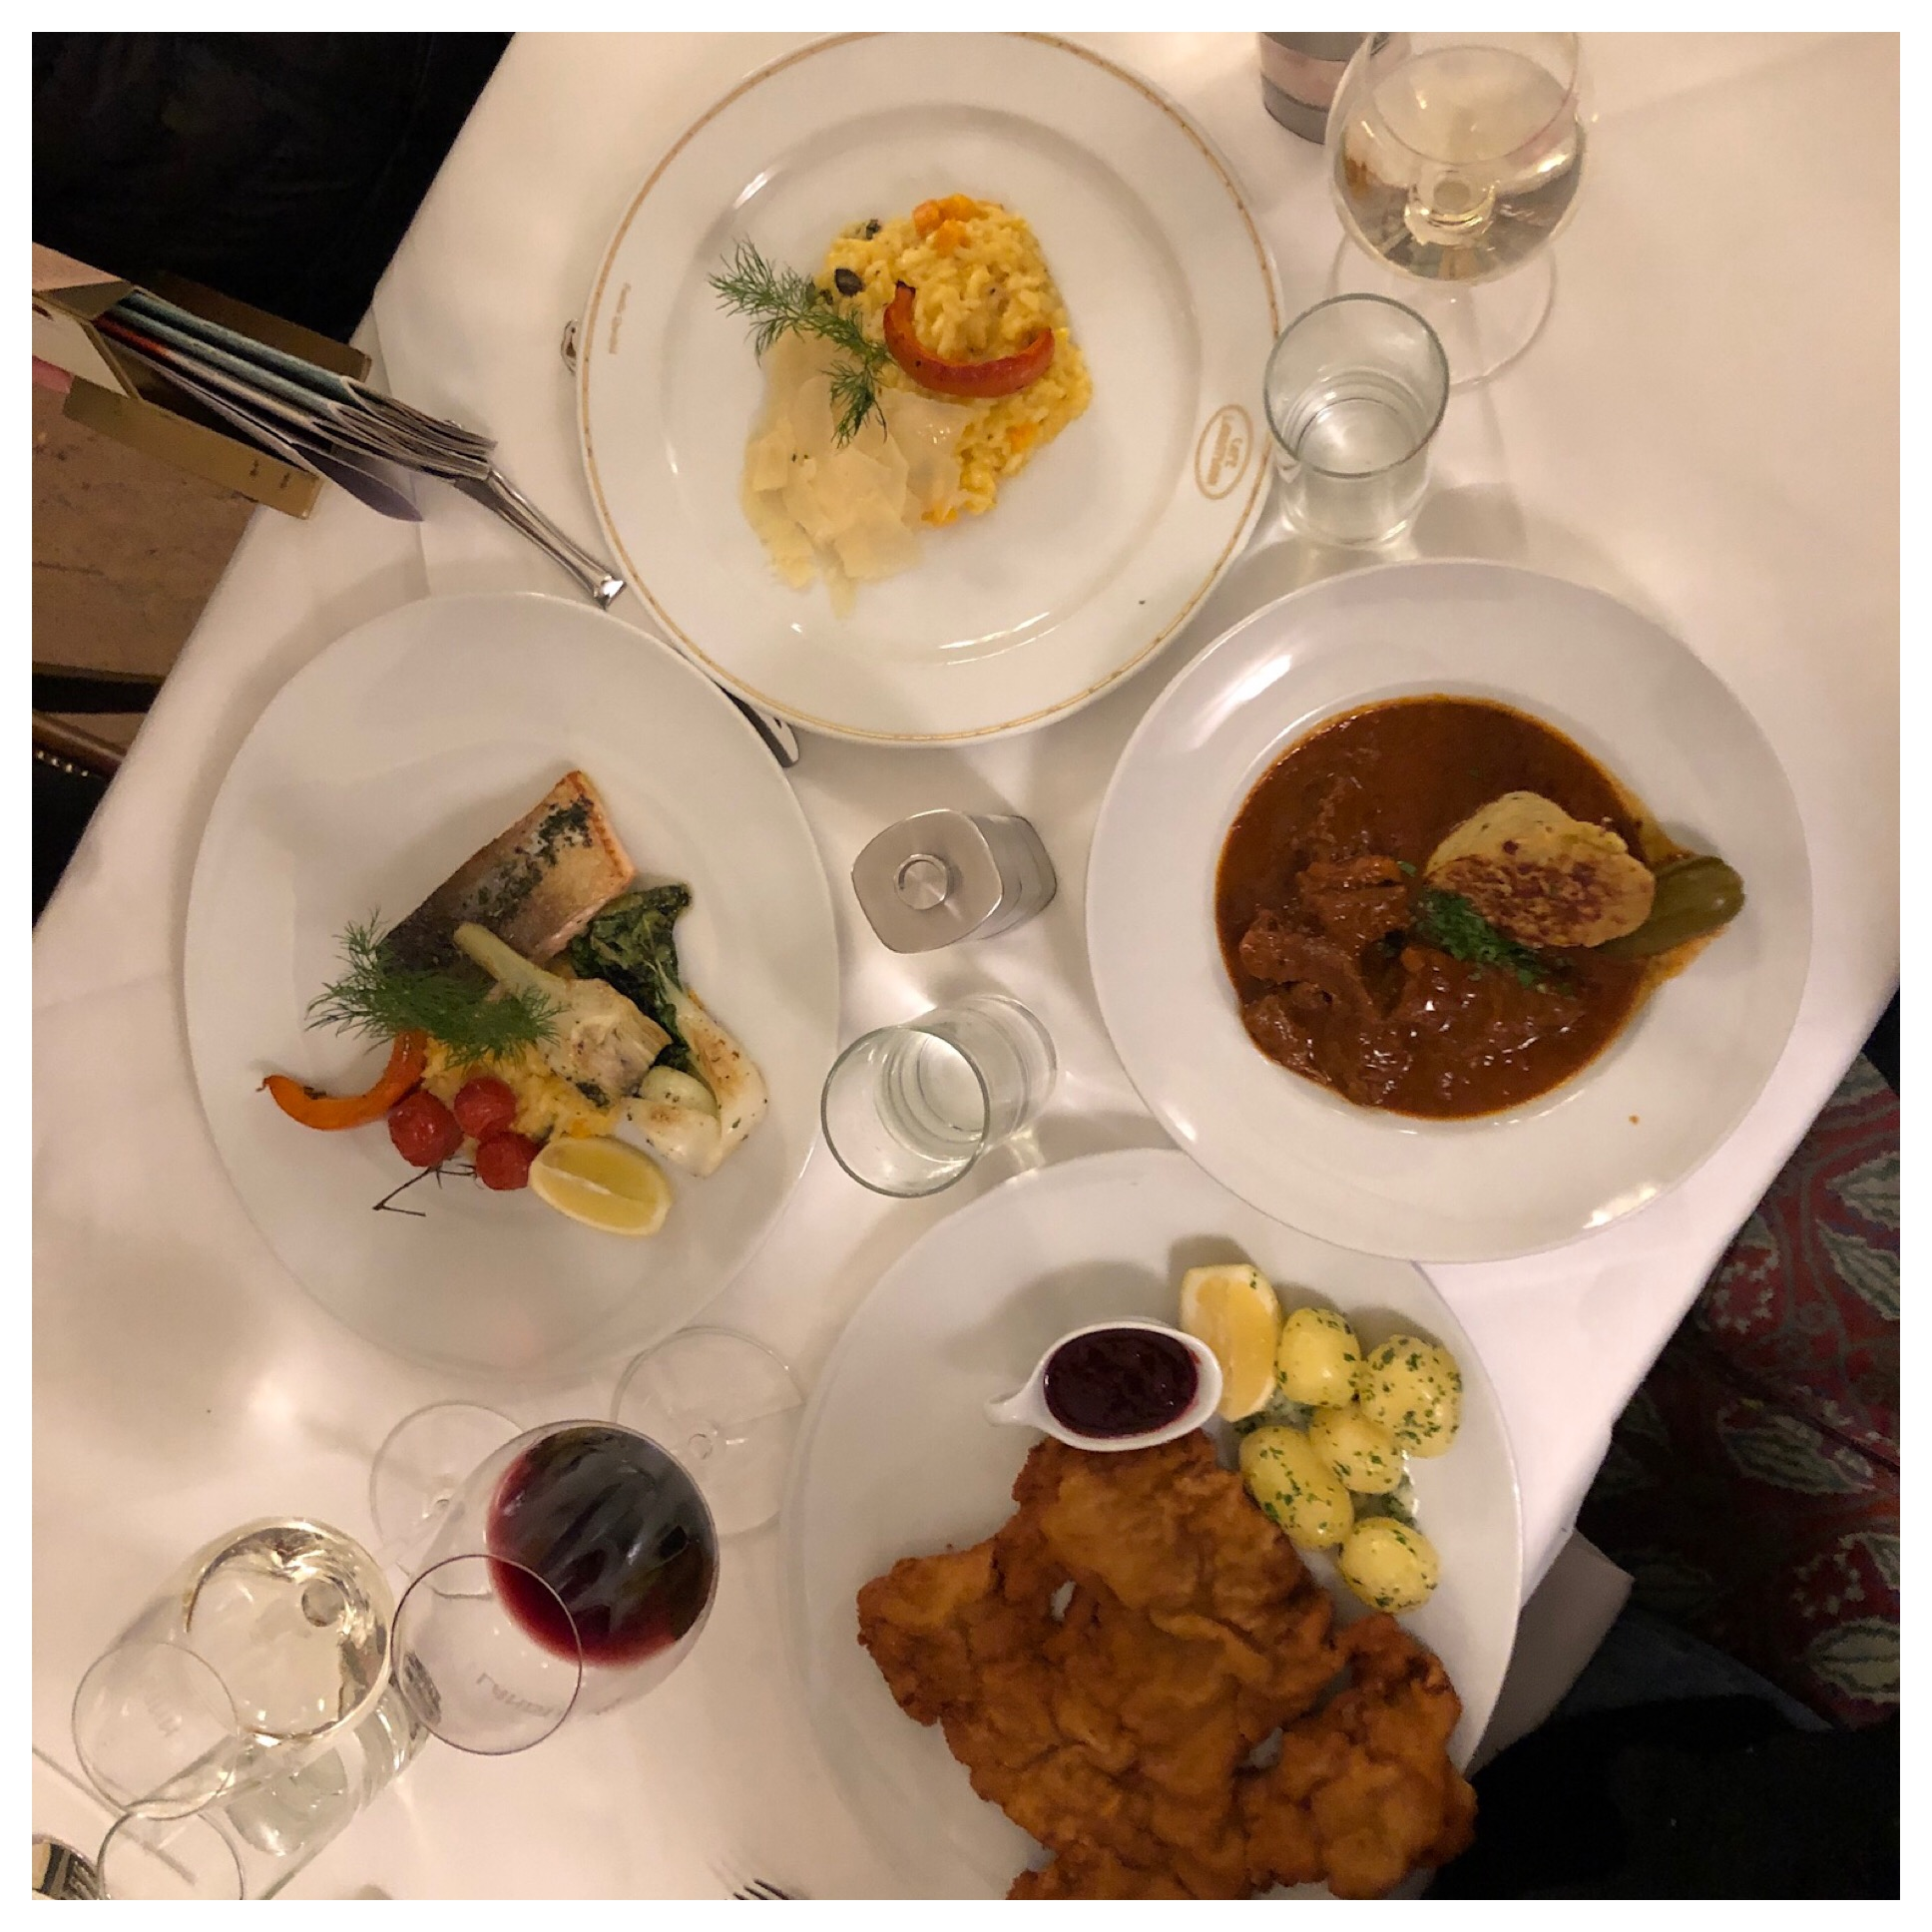 I had the goulash and Ava went for the wienerschnitzel. She had never had it and if not there then where? I think Meredith had salmon and risotto for Cheryl. All excellent!